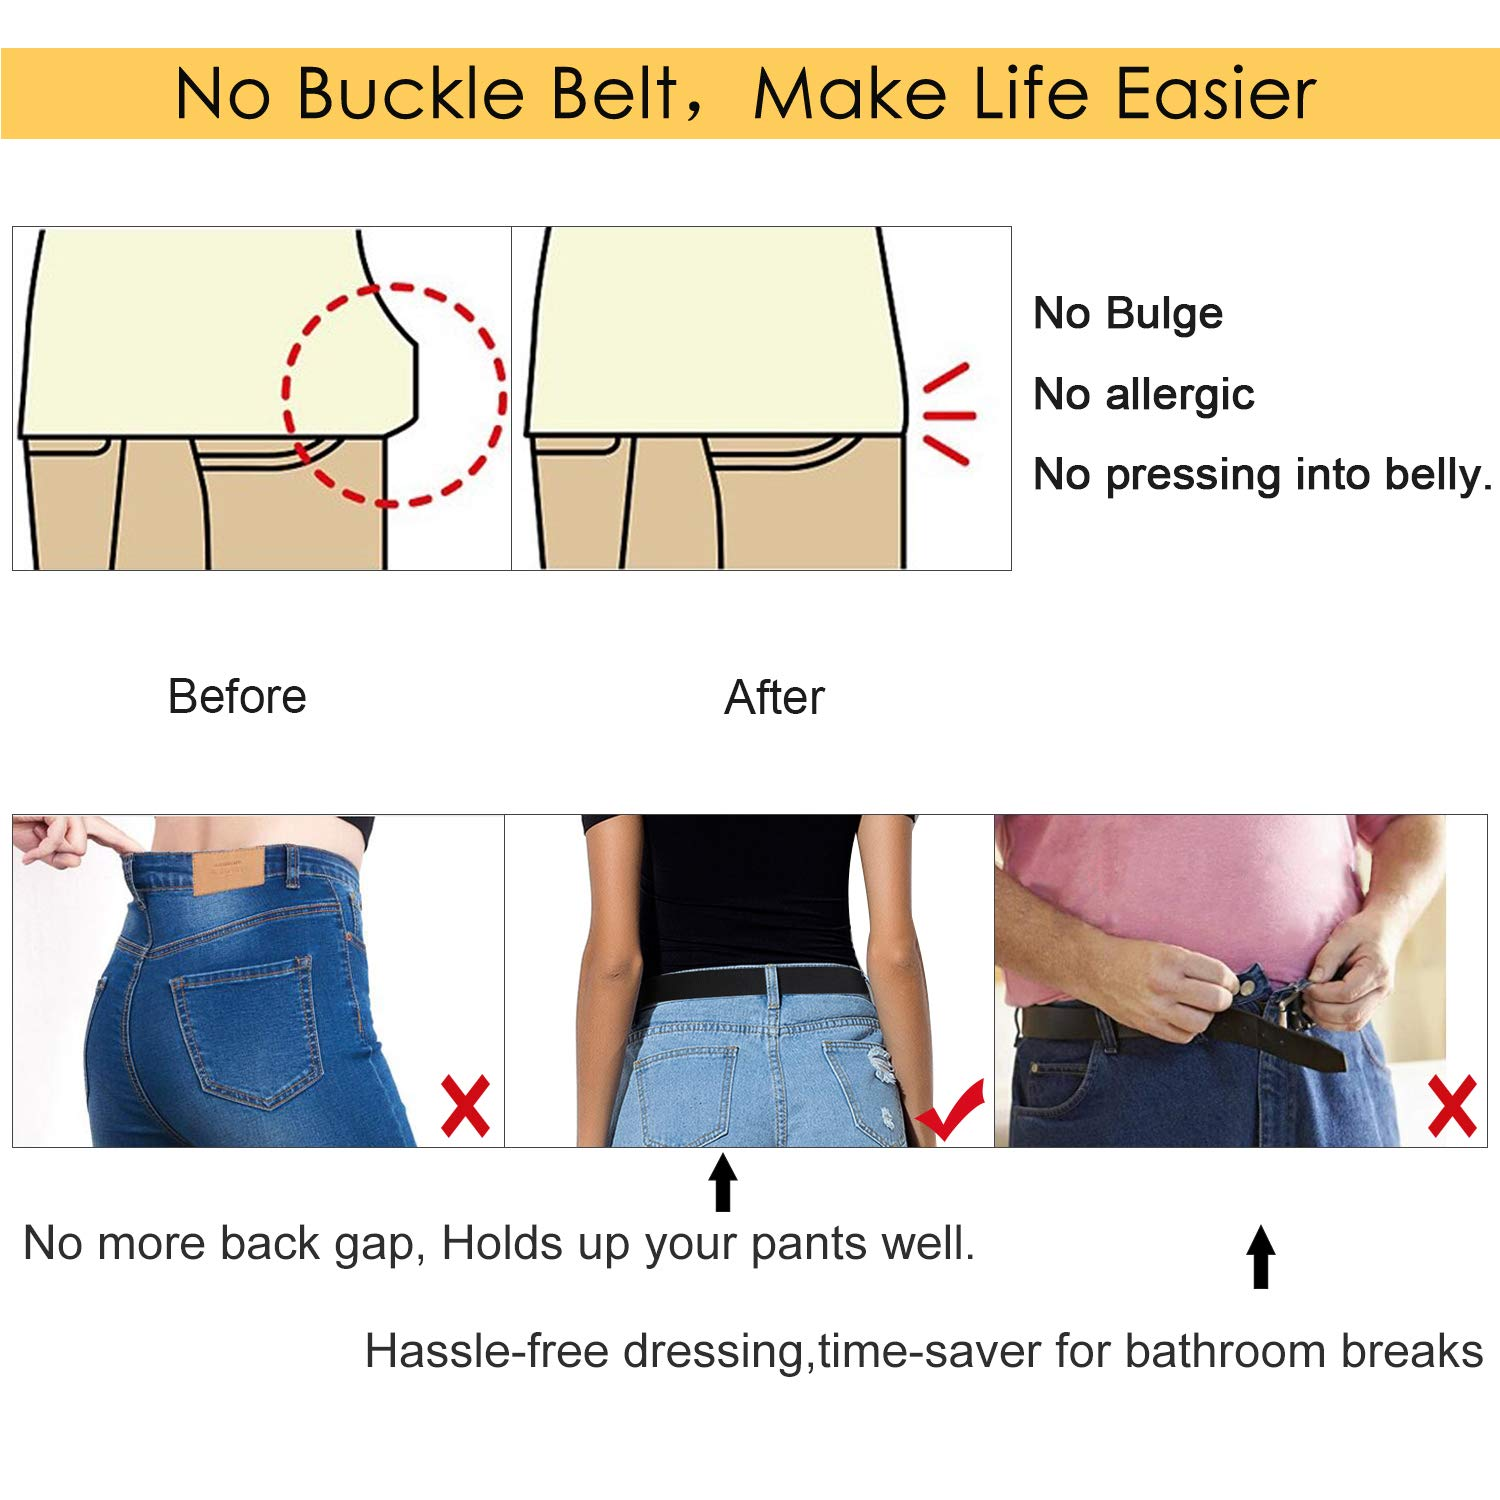 3pcs Women Men No Buckle Belt Invisible Buckle-Free Stretch Belt Ladies Elastic Adjustable Belt No Bulge Belt Stretch Waist Belts for Jeans Trousers